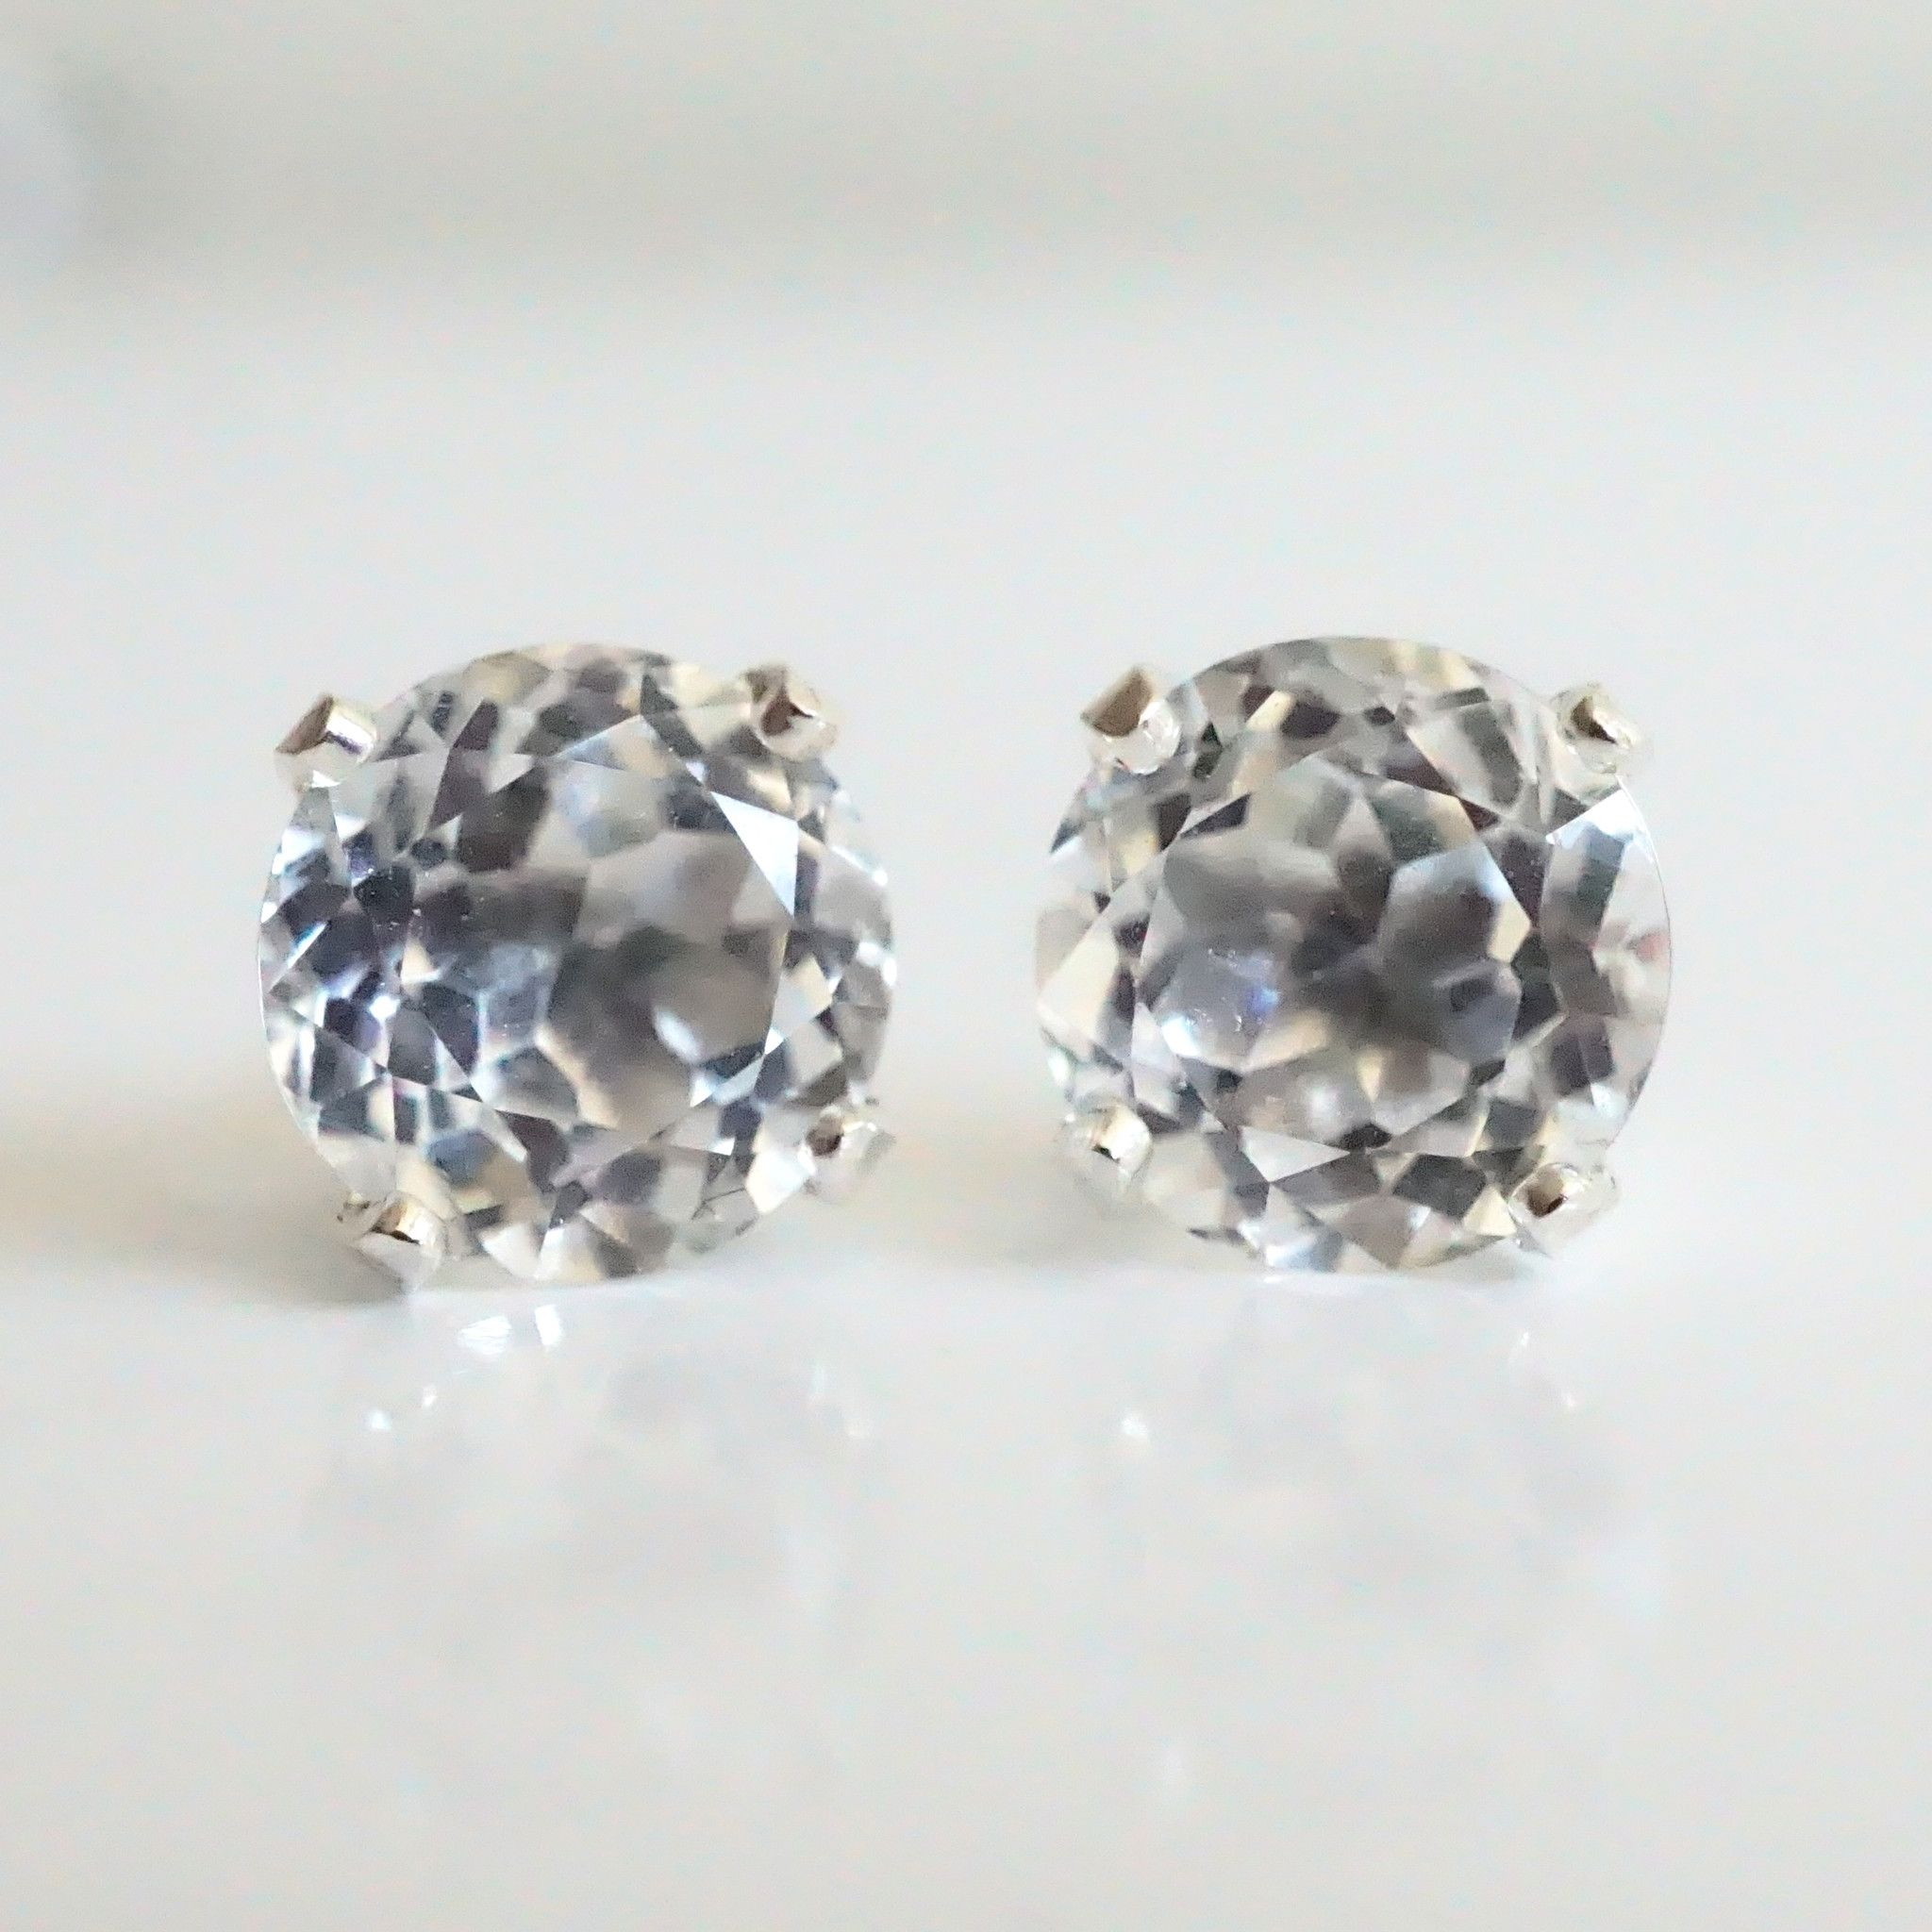 valentine giveaway earrings s day topaz thrifty valentines stud white momma ramblings shadora silver